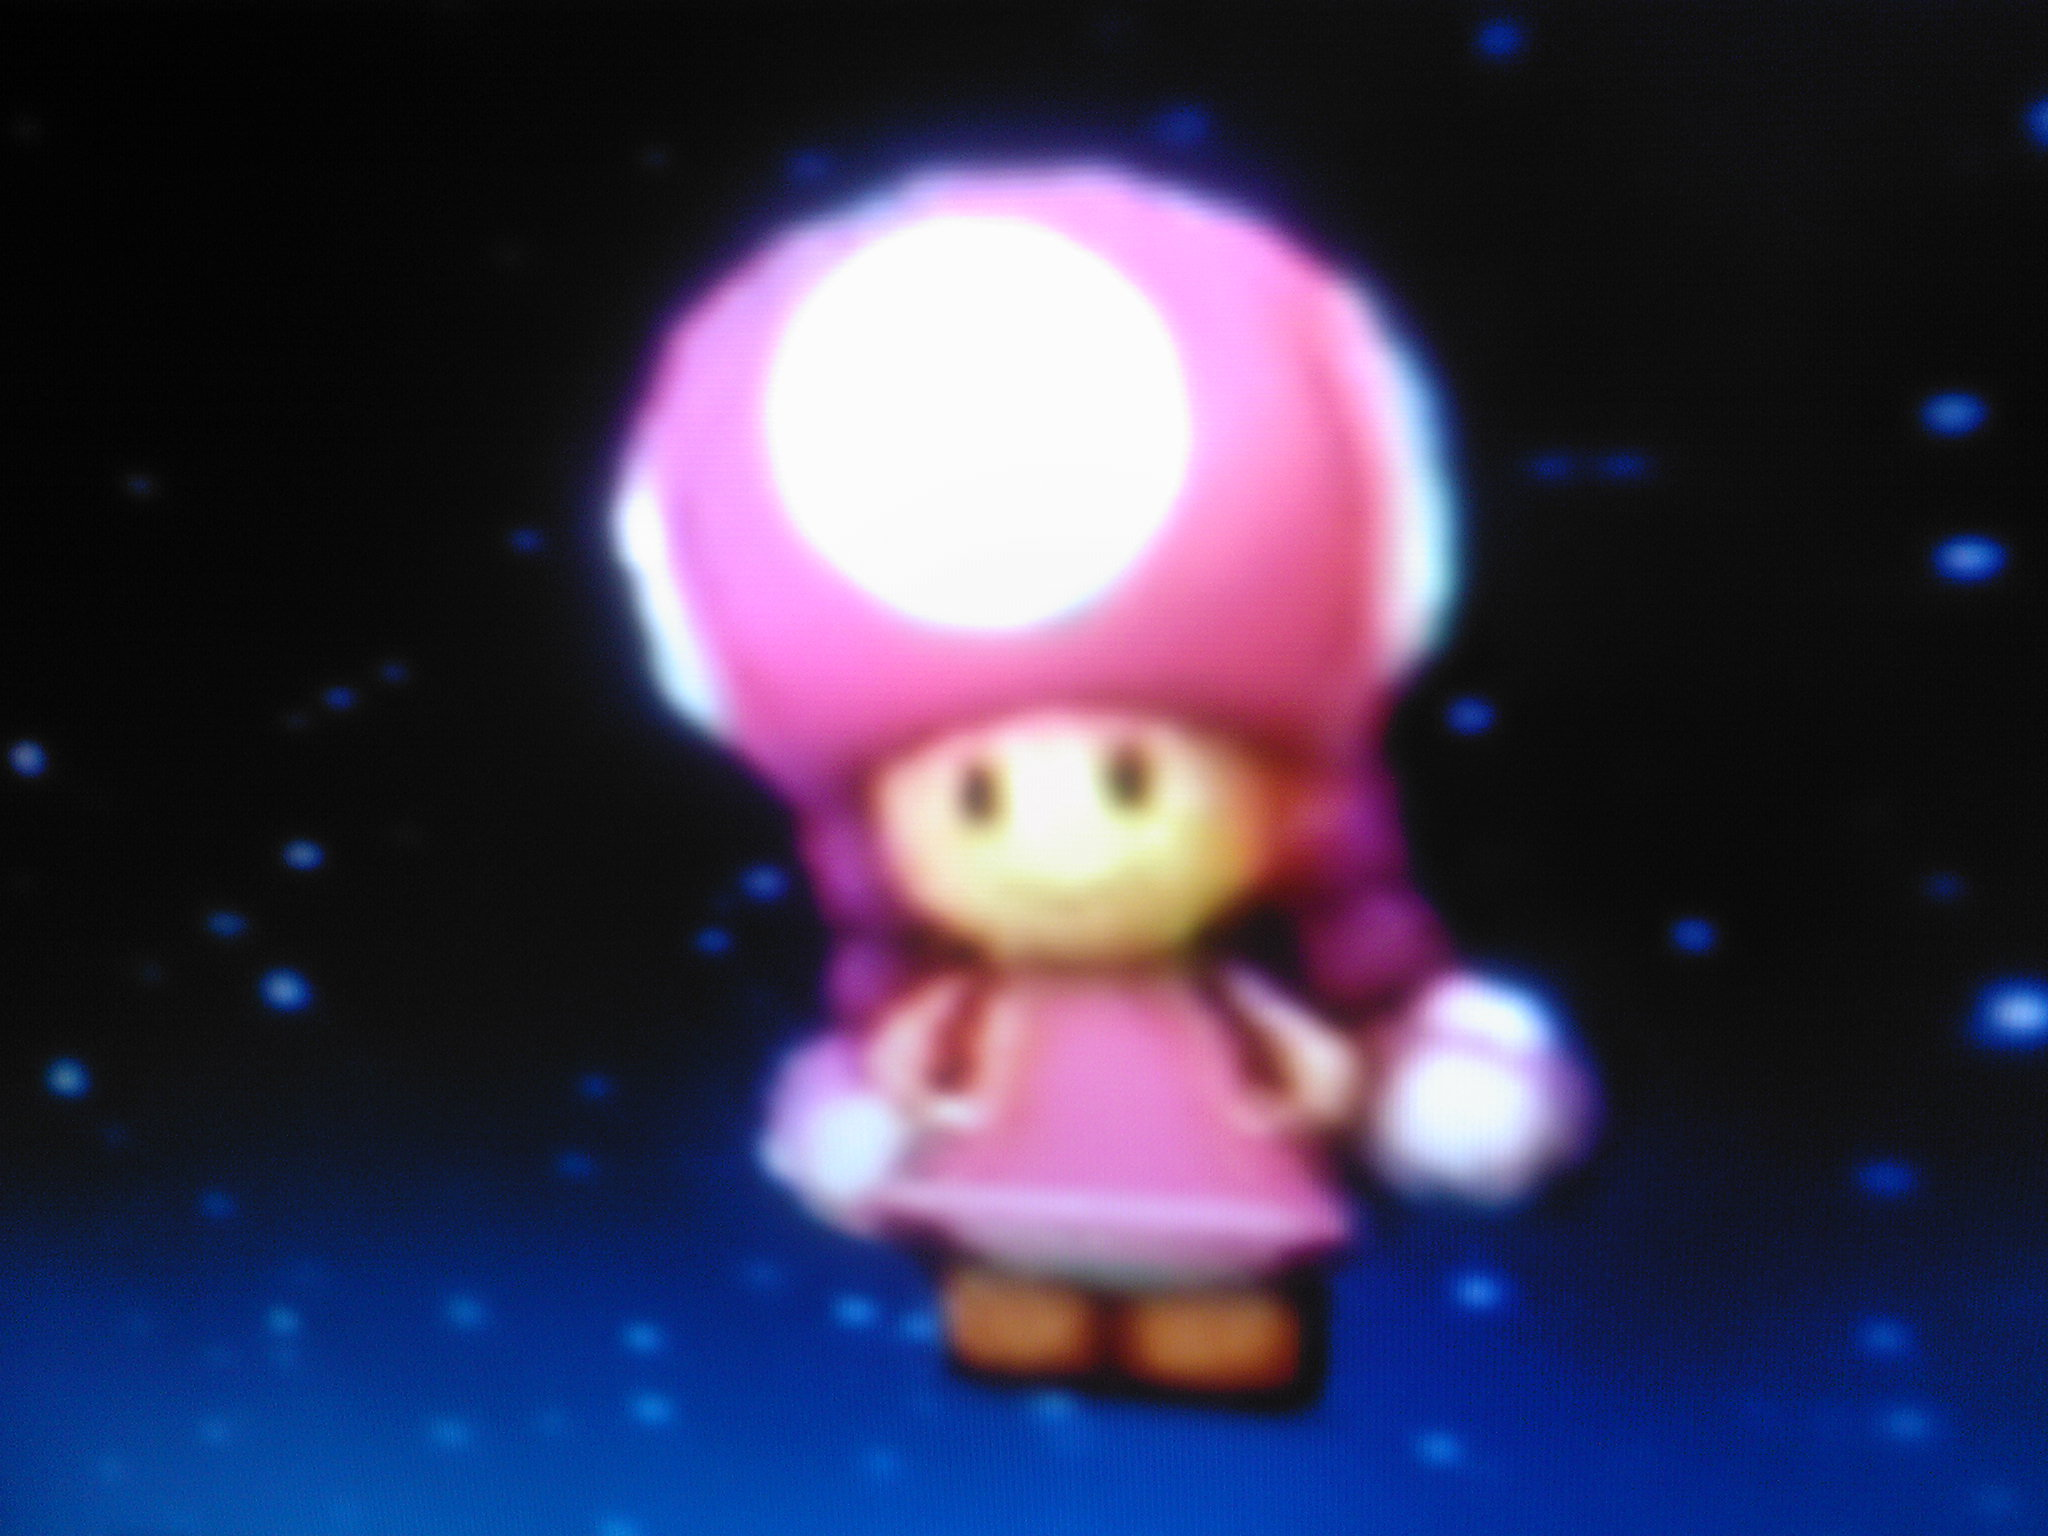 Mario Kart Images | Icons, Wallpapers and Photos on Fanpop